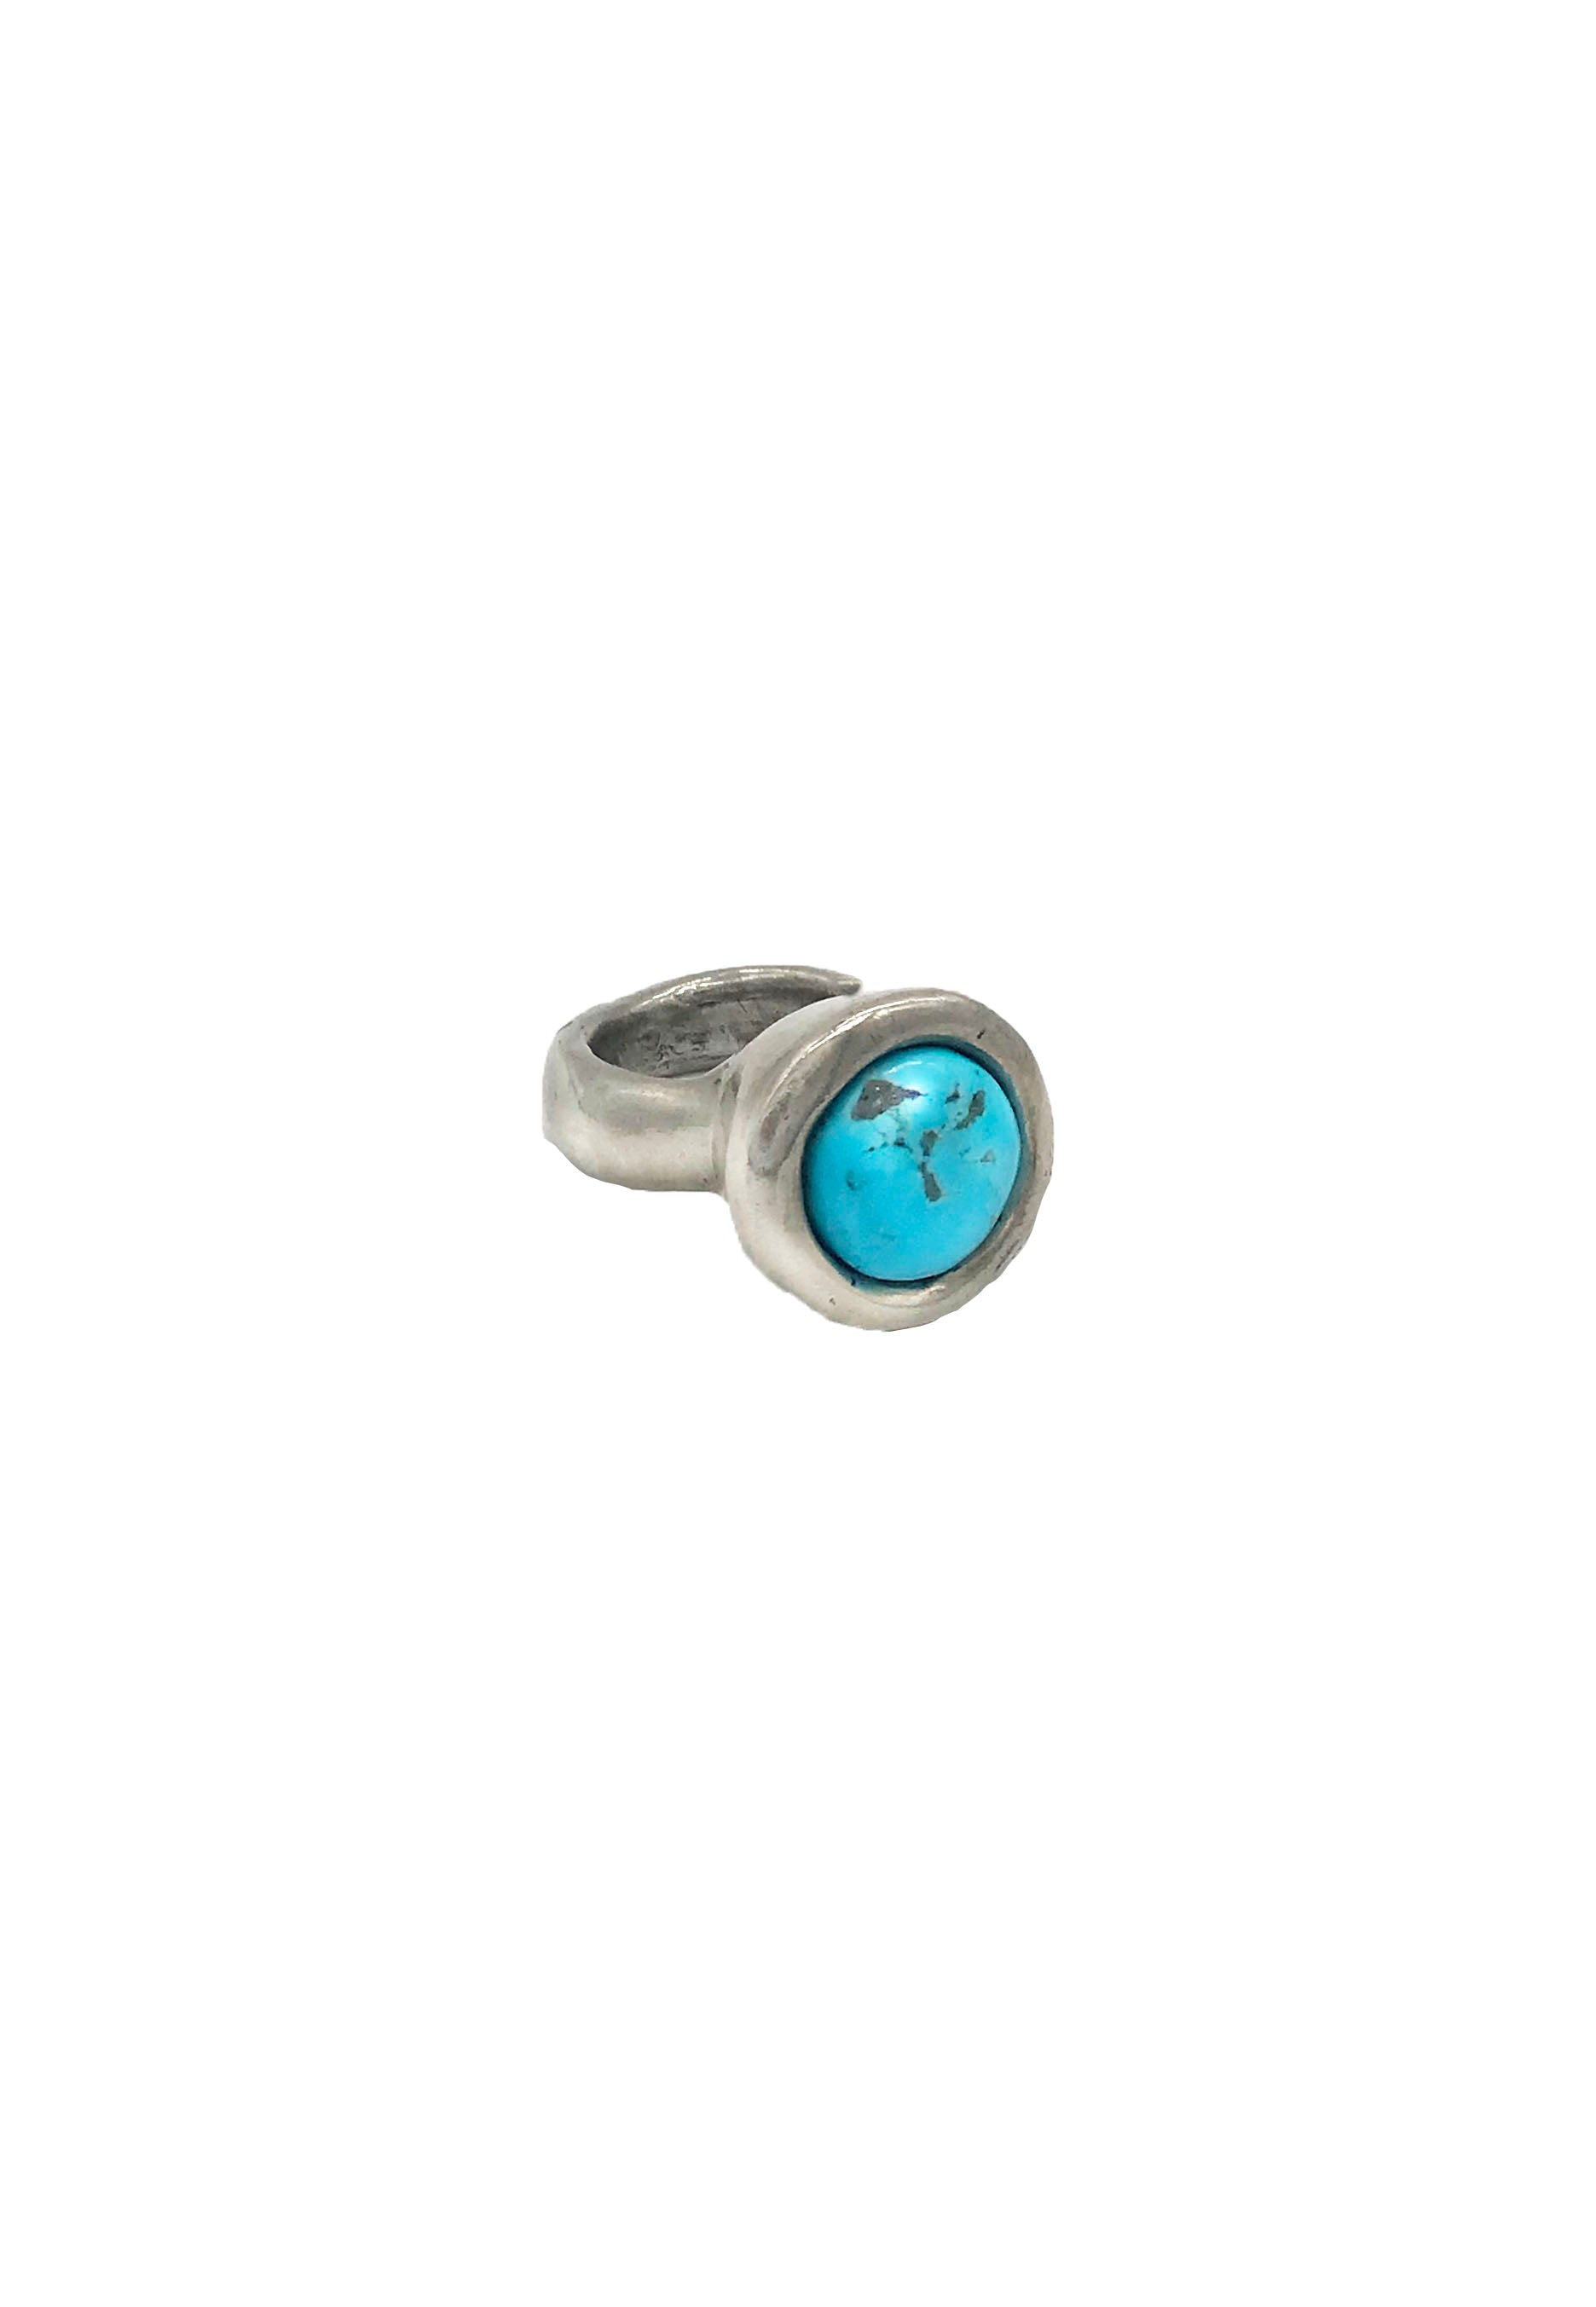 Kingman Turquoise Egg Nest Ring